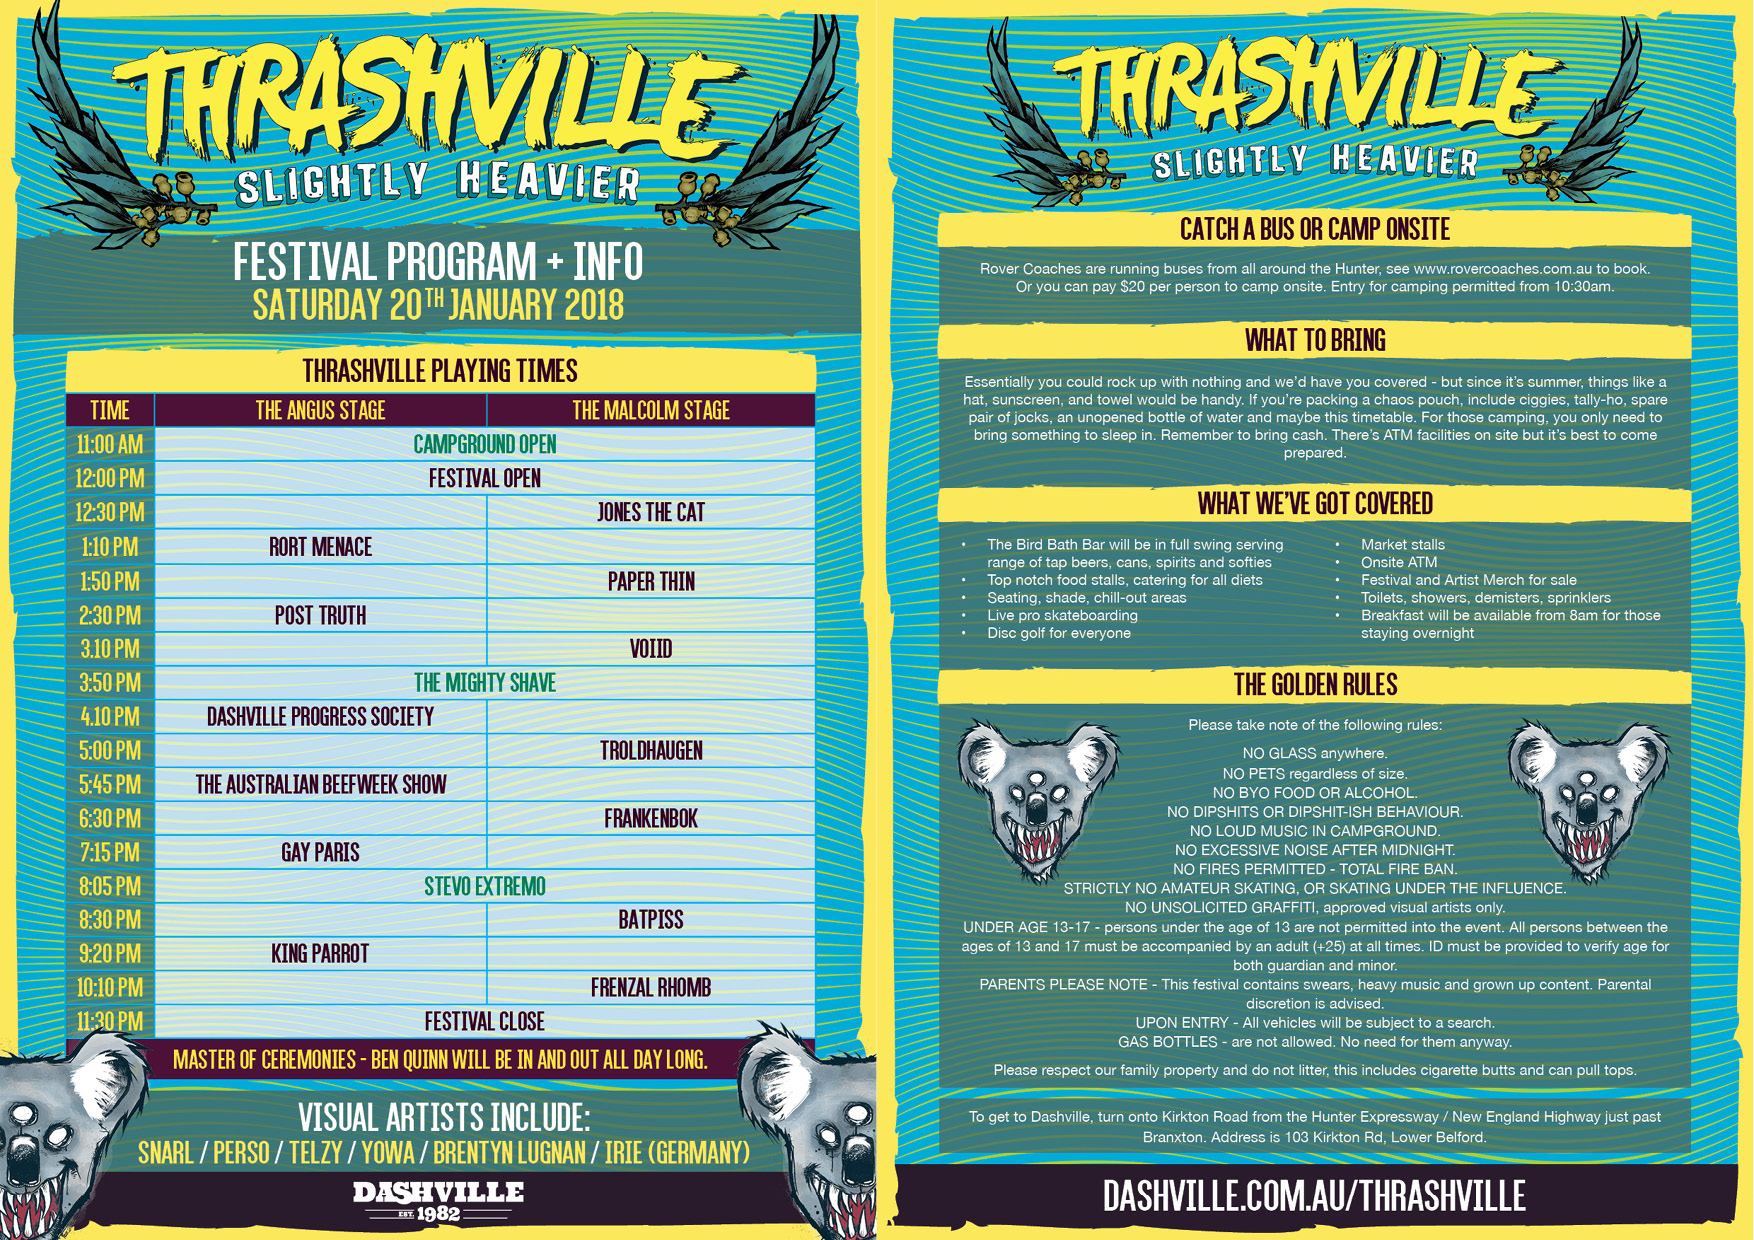 Thrashville Program + Info